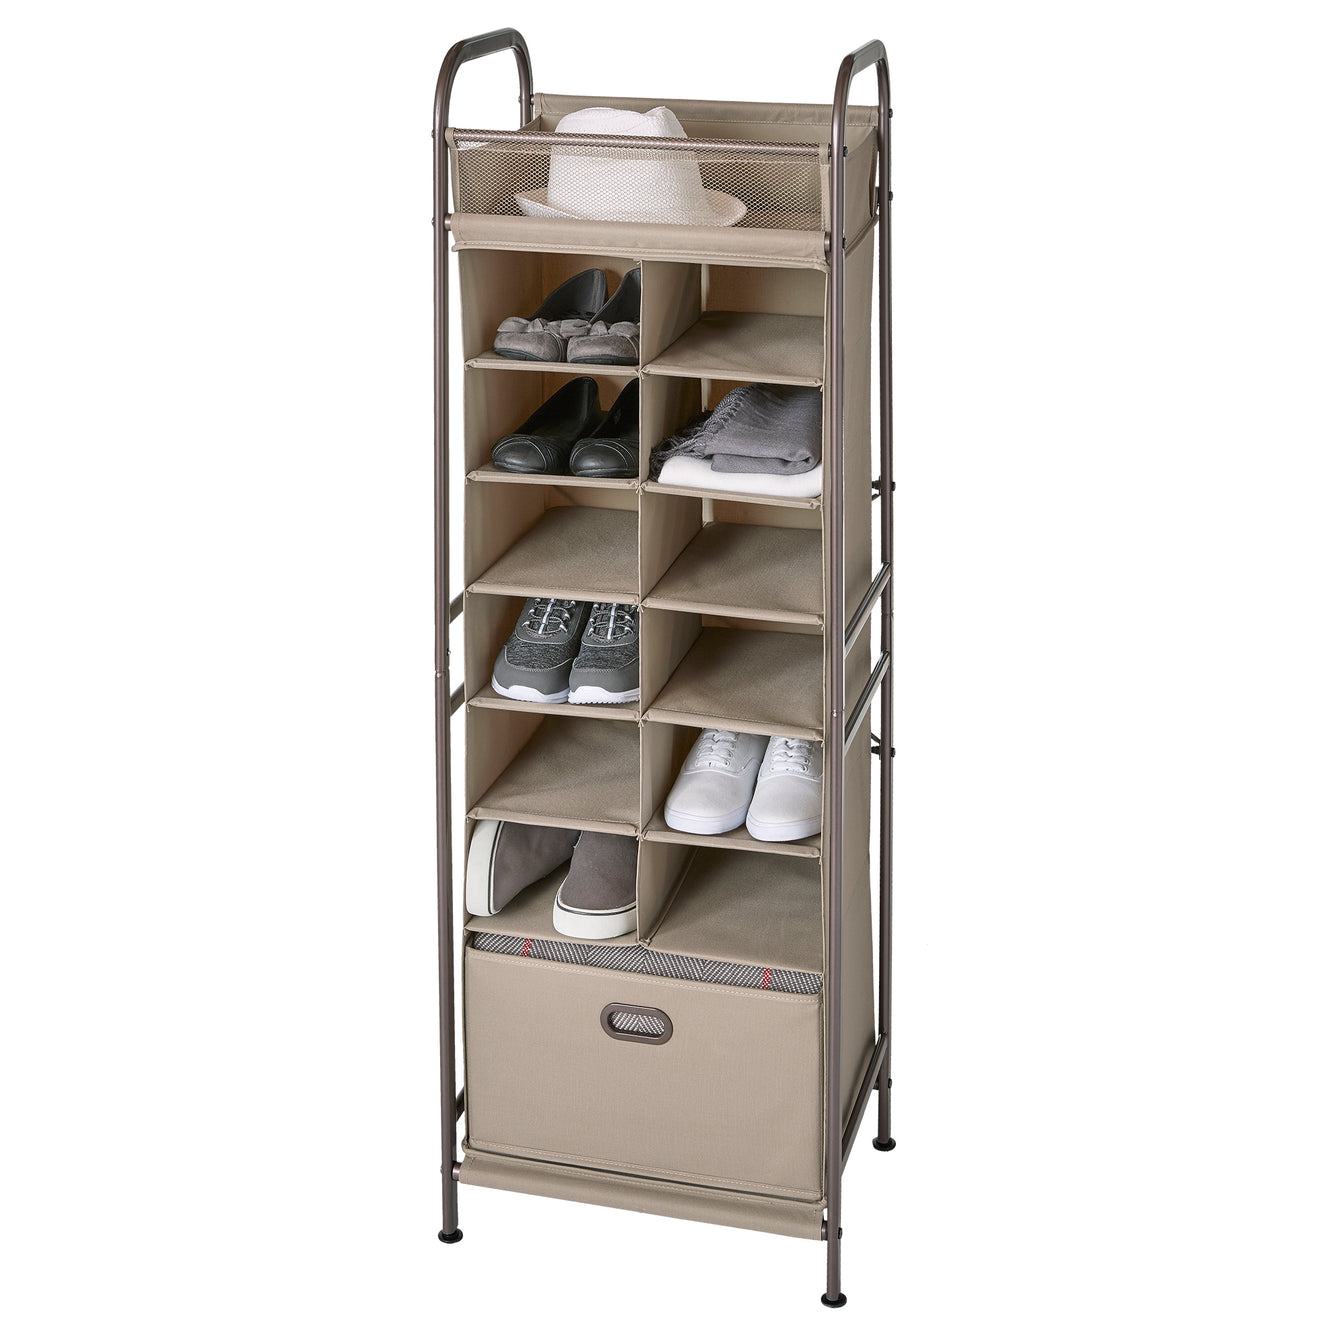 Vertical 12-Cubby Shoe Storage Organizer